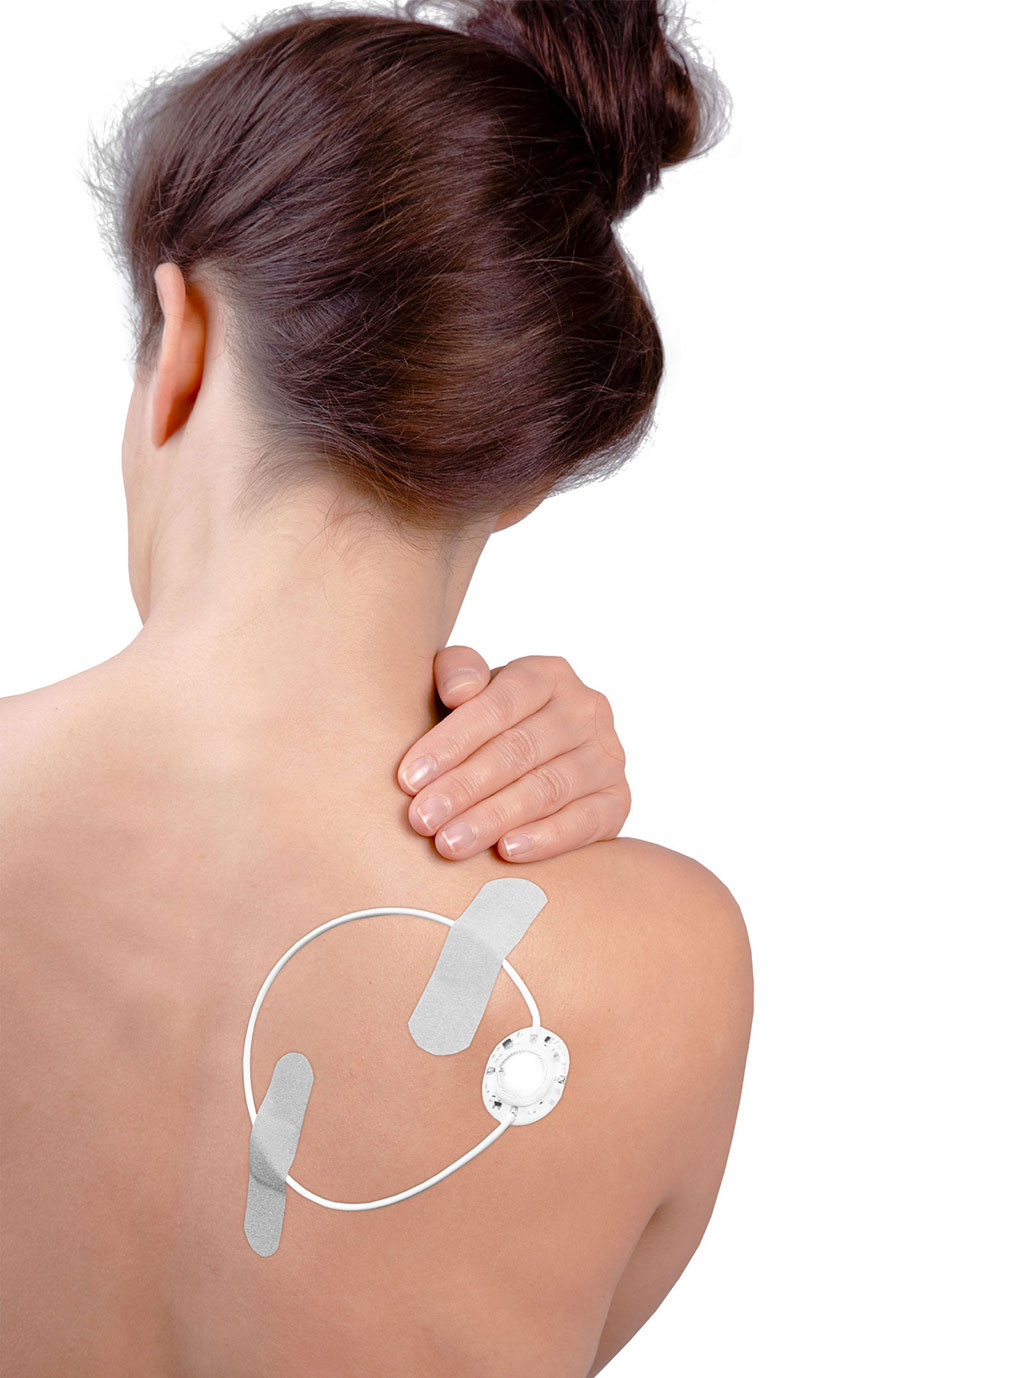 Image: Various types of pain can be treated using the ActiPatch device (Photo courtesy of BioElectronics)